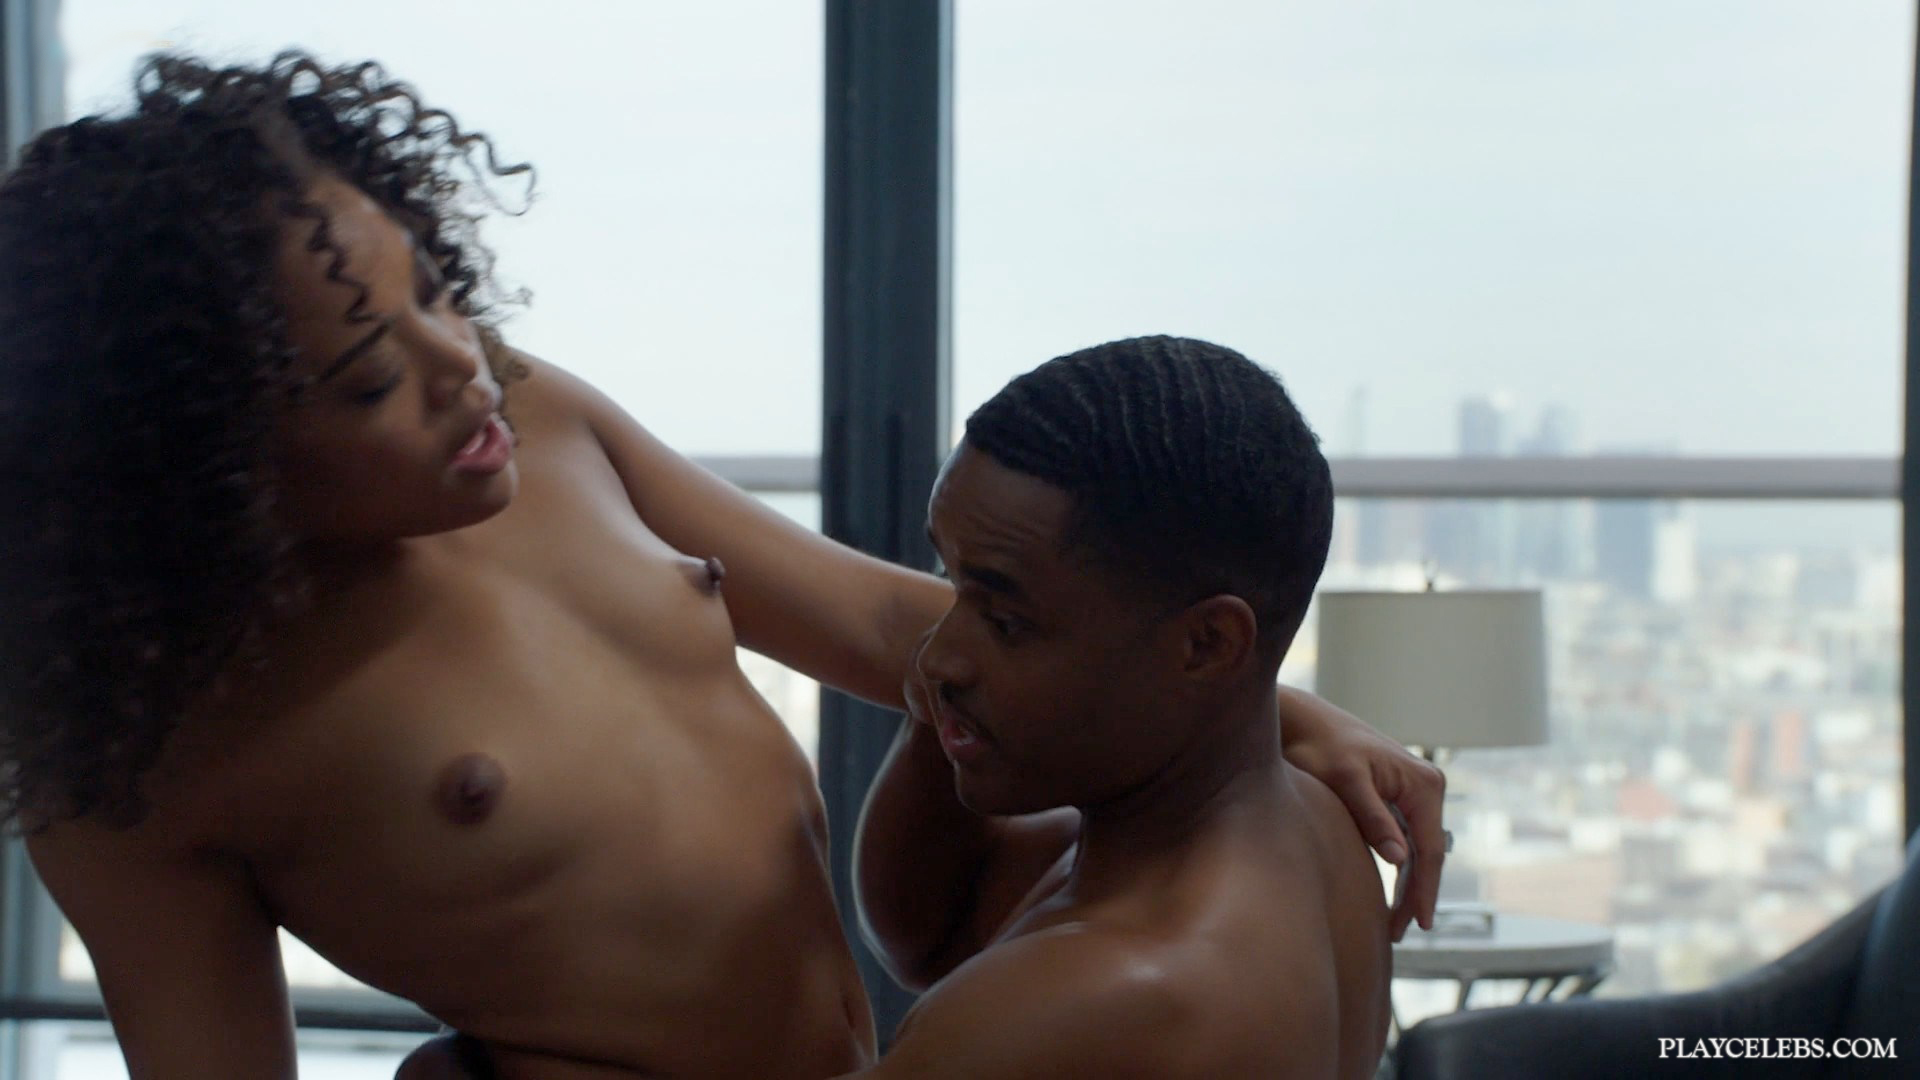 Candace Maxwell Nude And Rough Sex Action In Doggy Style From Power S06E03